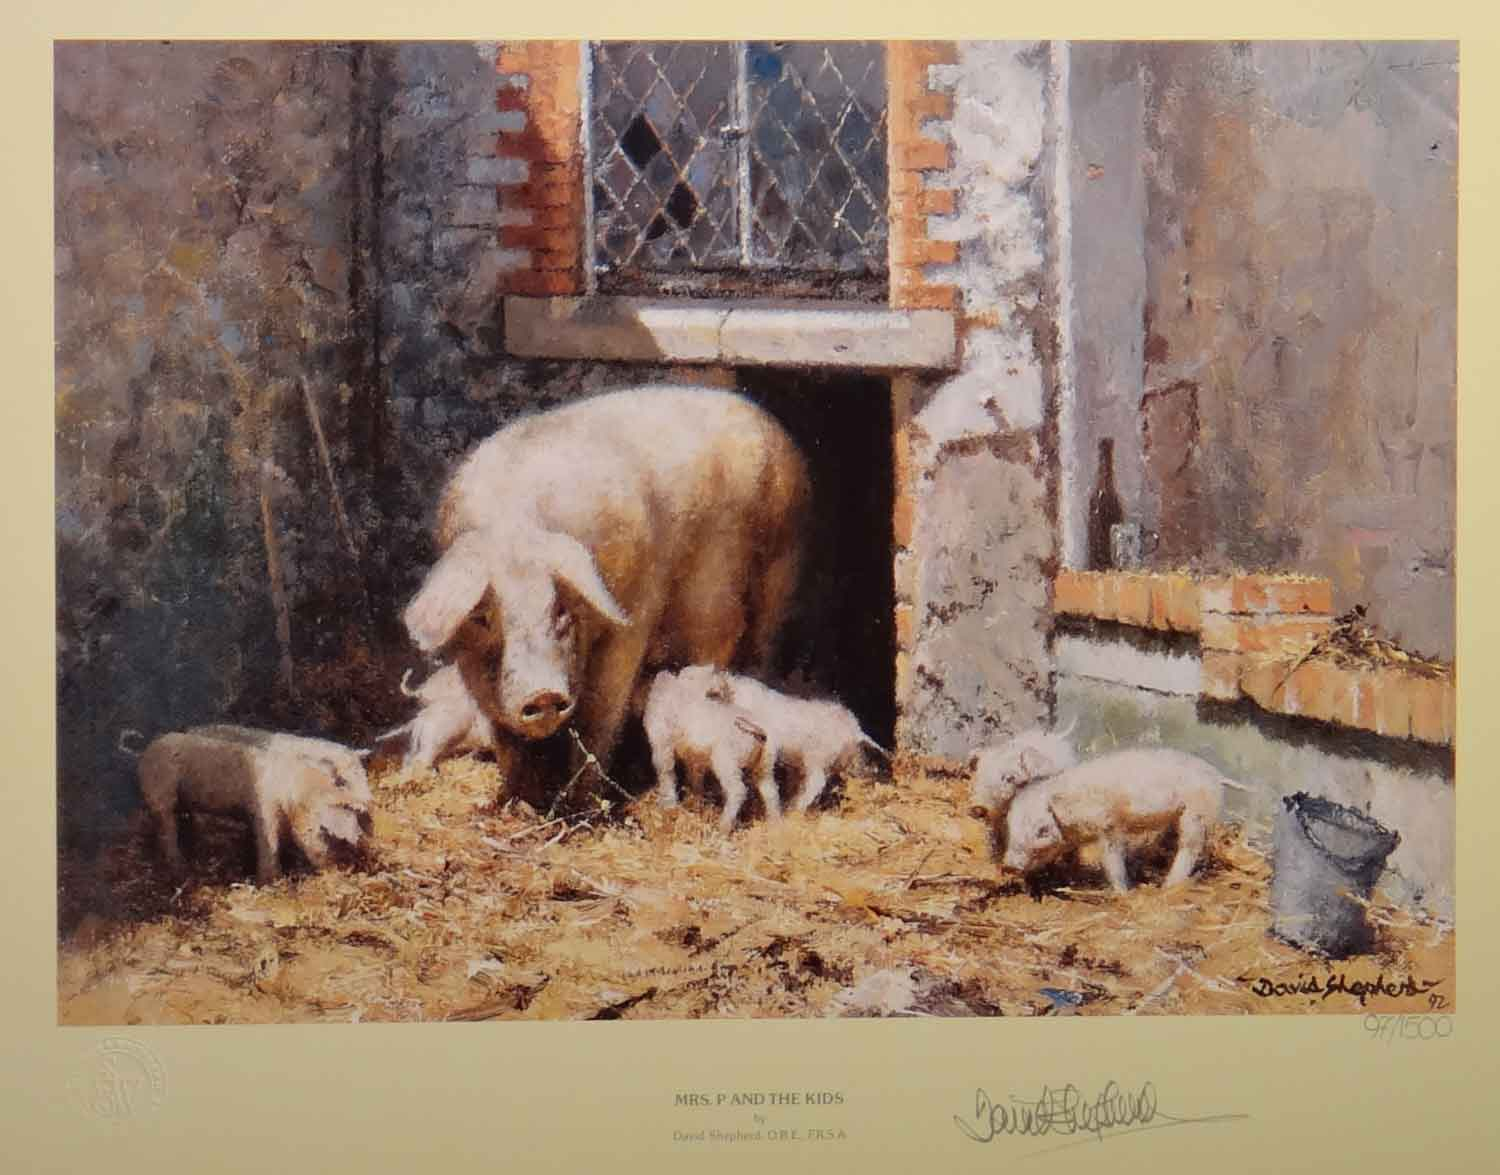 Pictures Of Pigs To Print. kids, pigs signed print